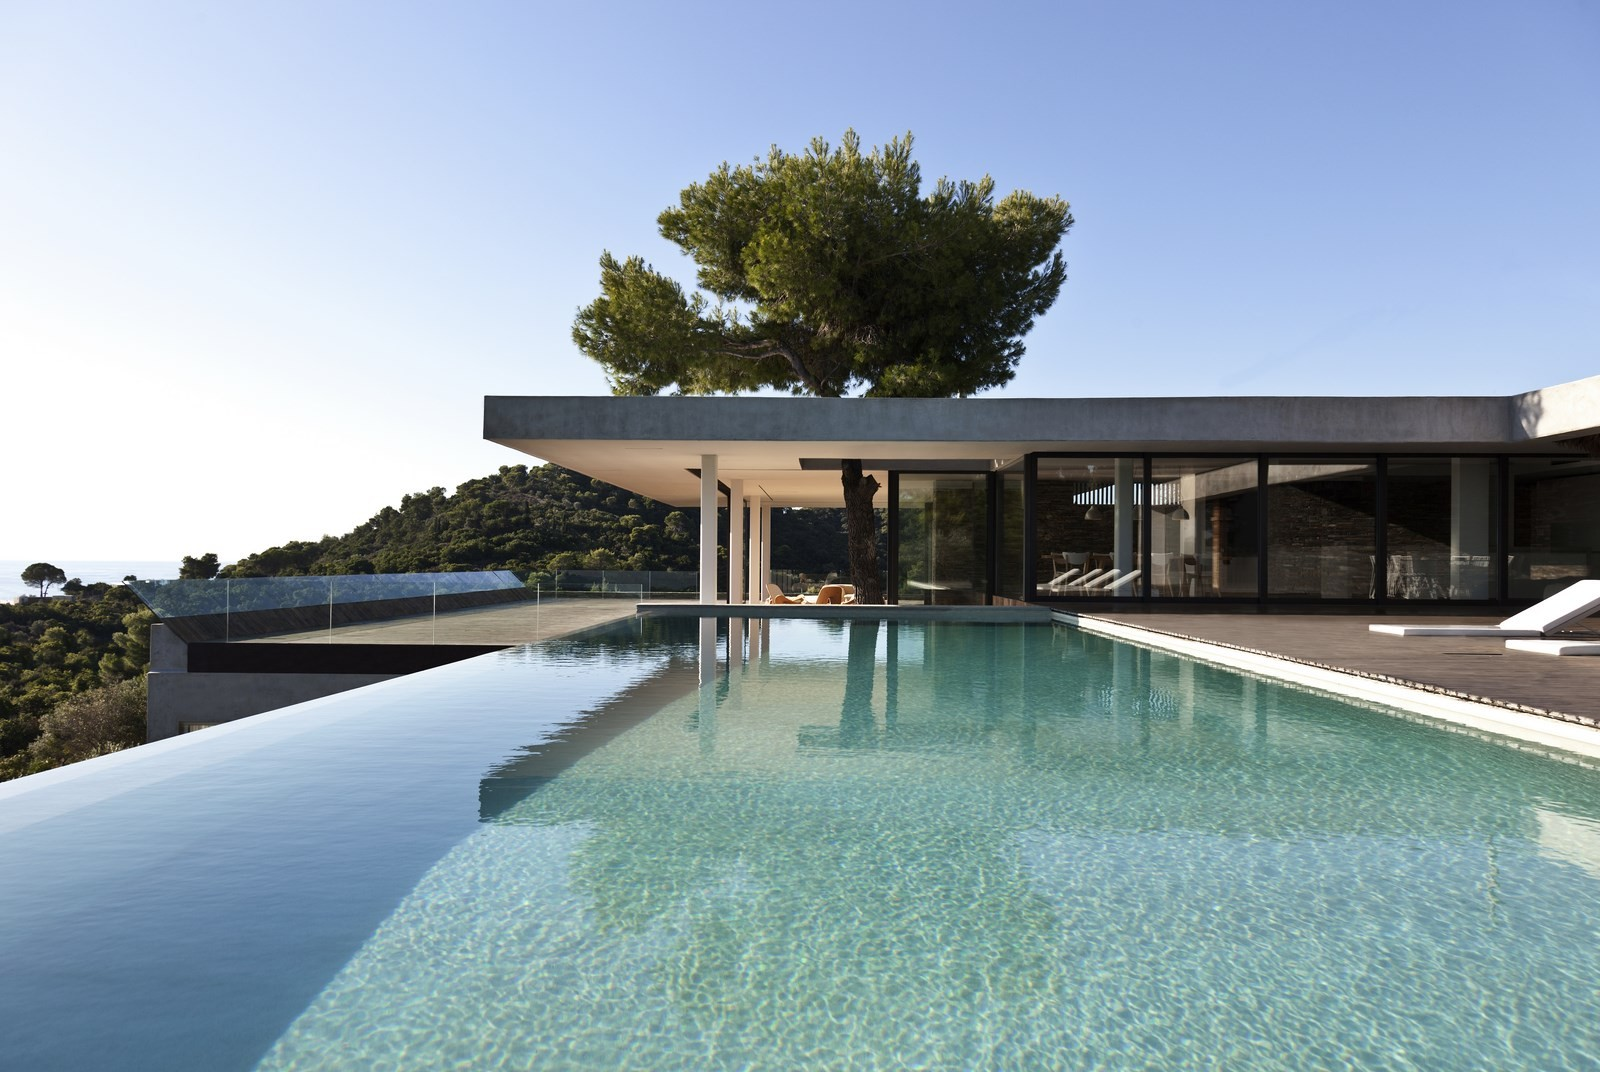 Plane house k studio archdaily for Moderne architektur villa